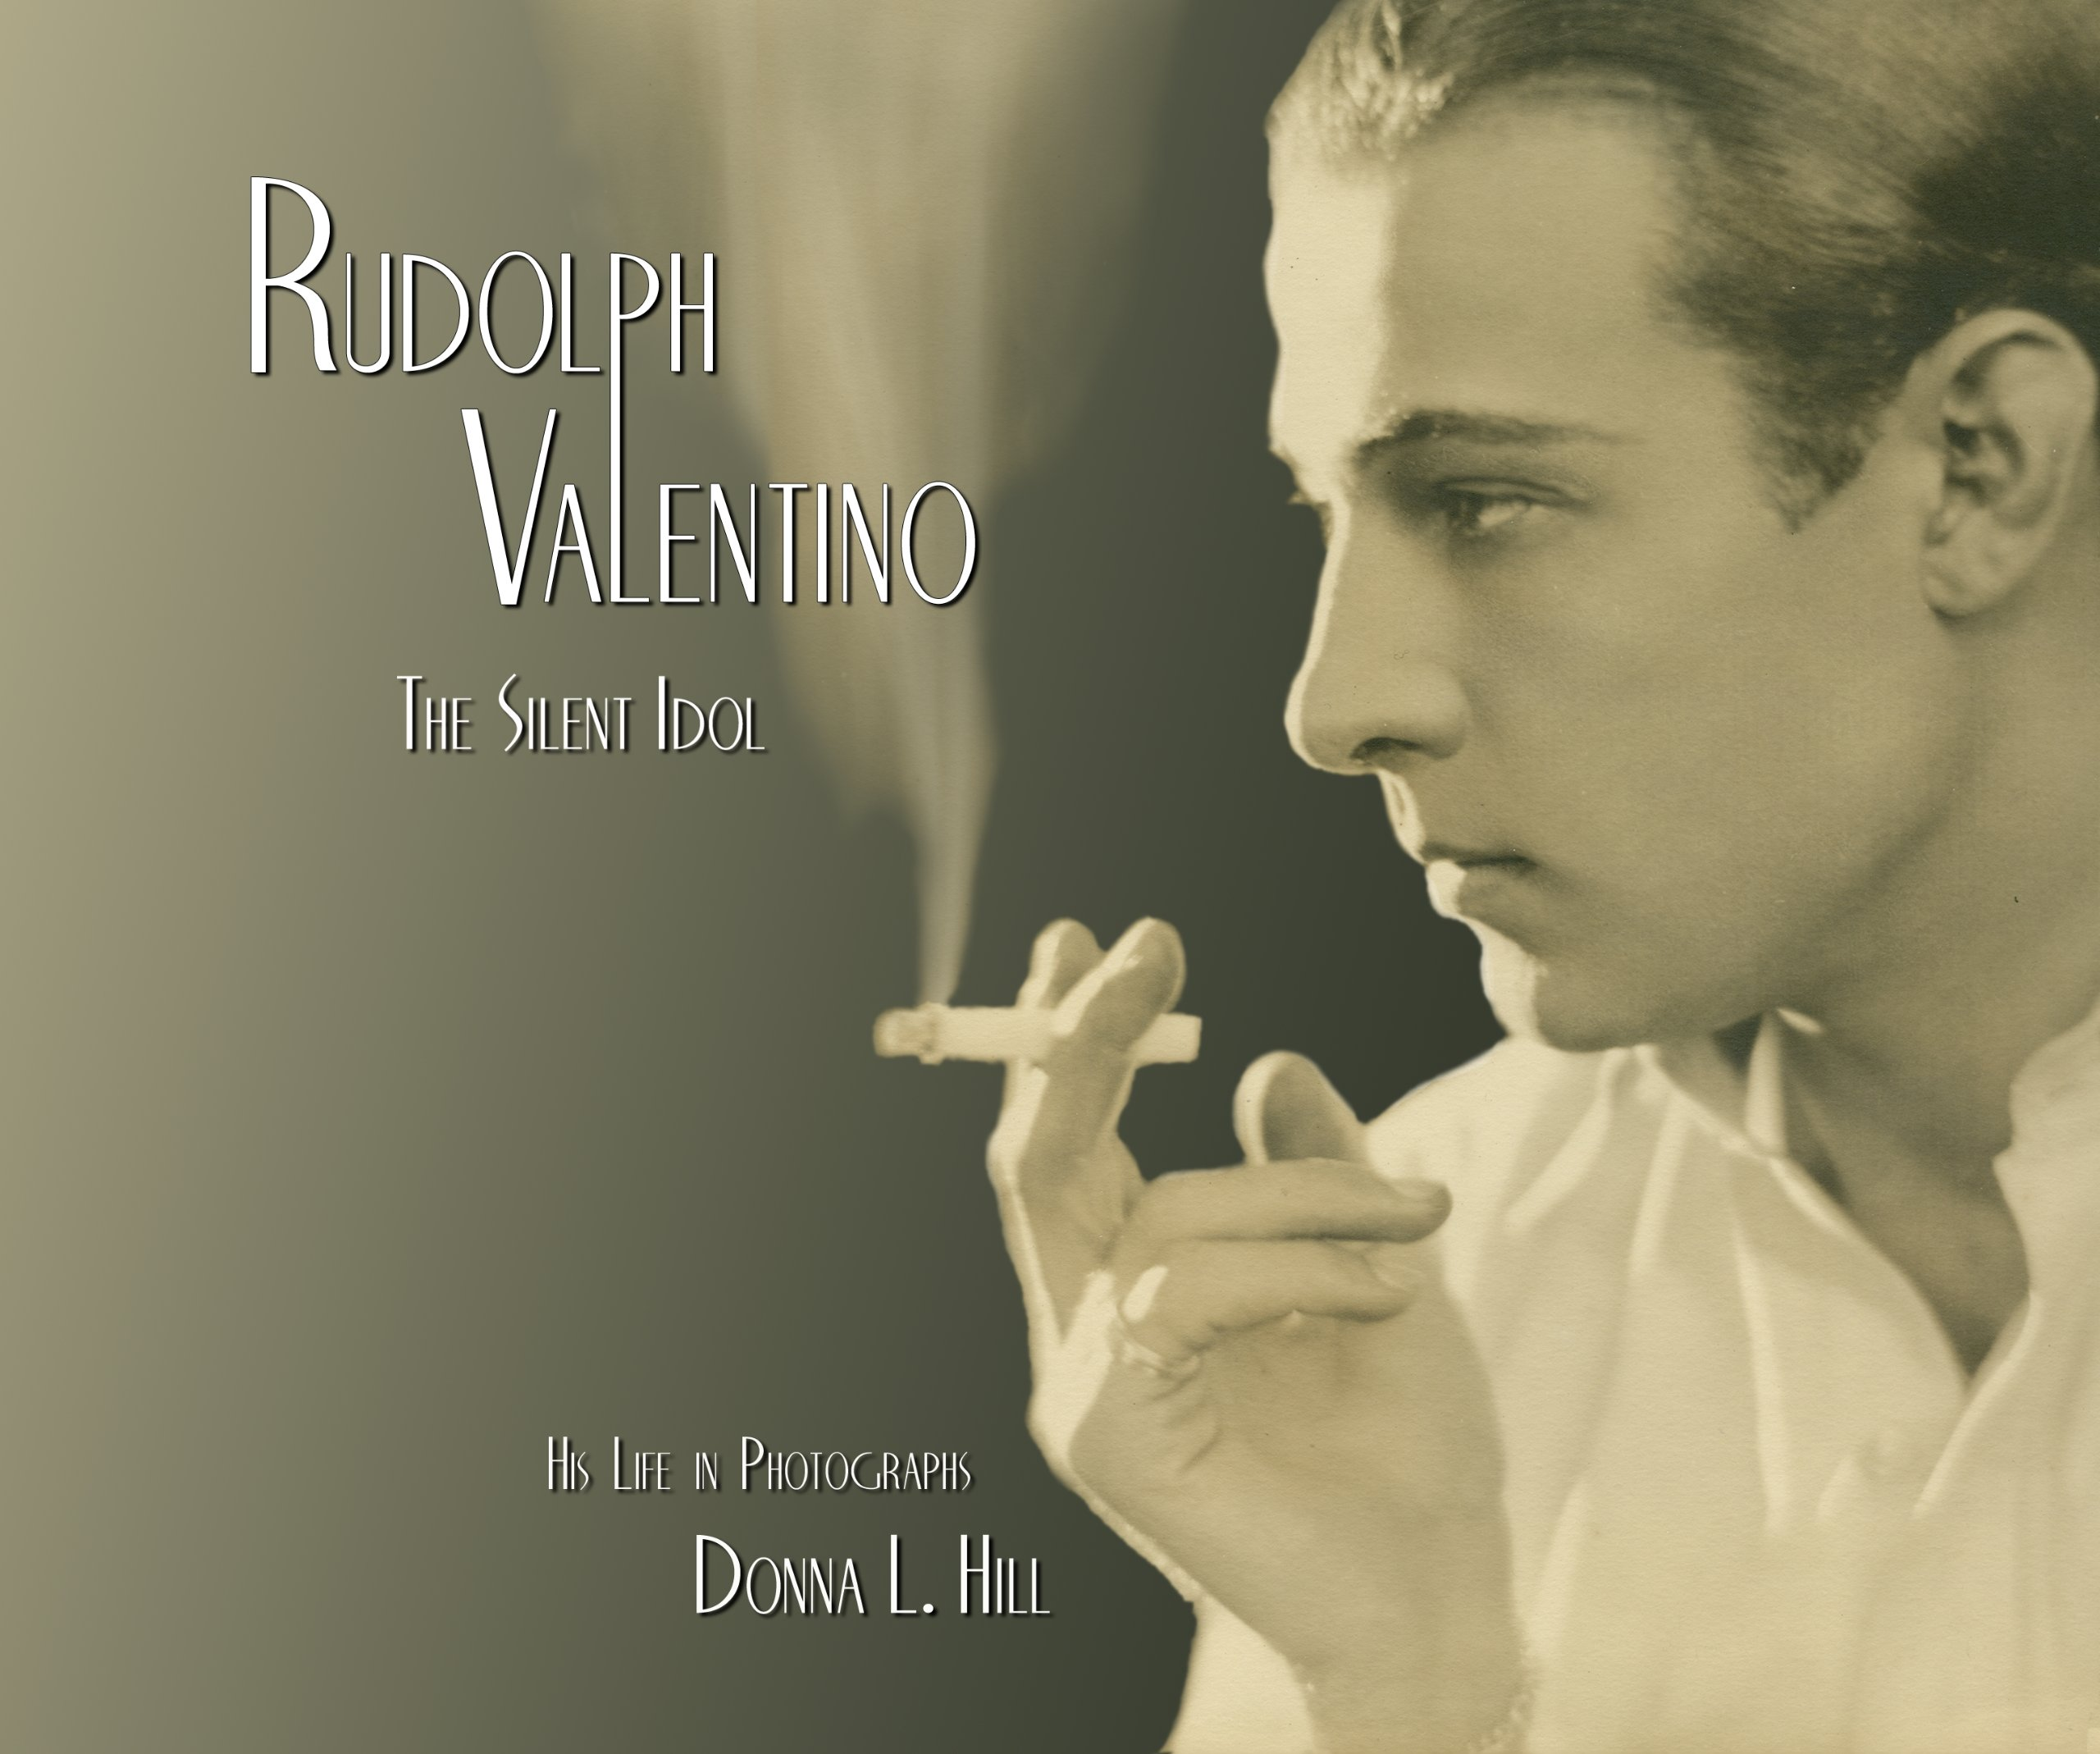 Rudolph Valentino The Silent Idol His Life In Photographs Donna L